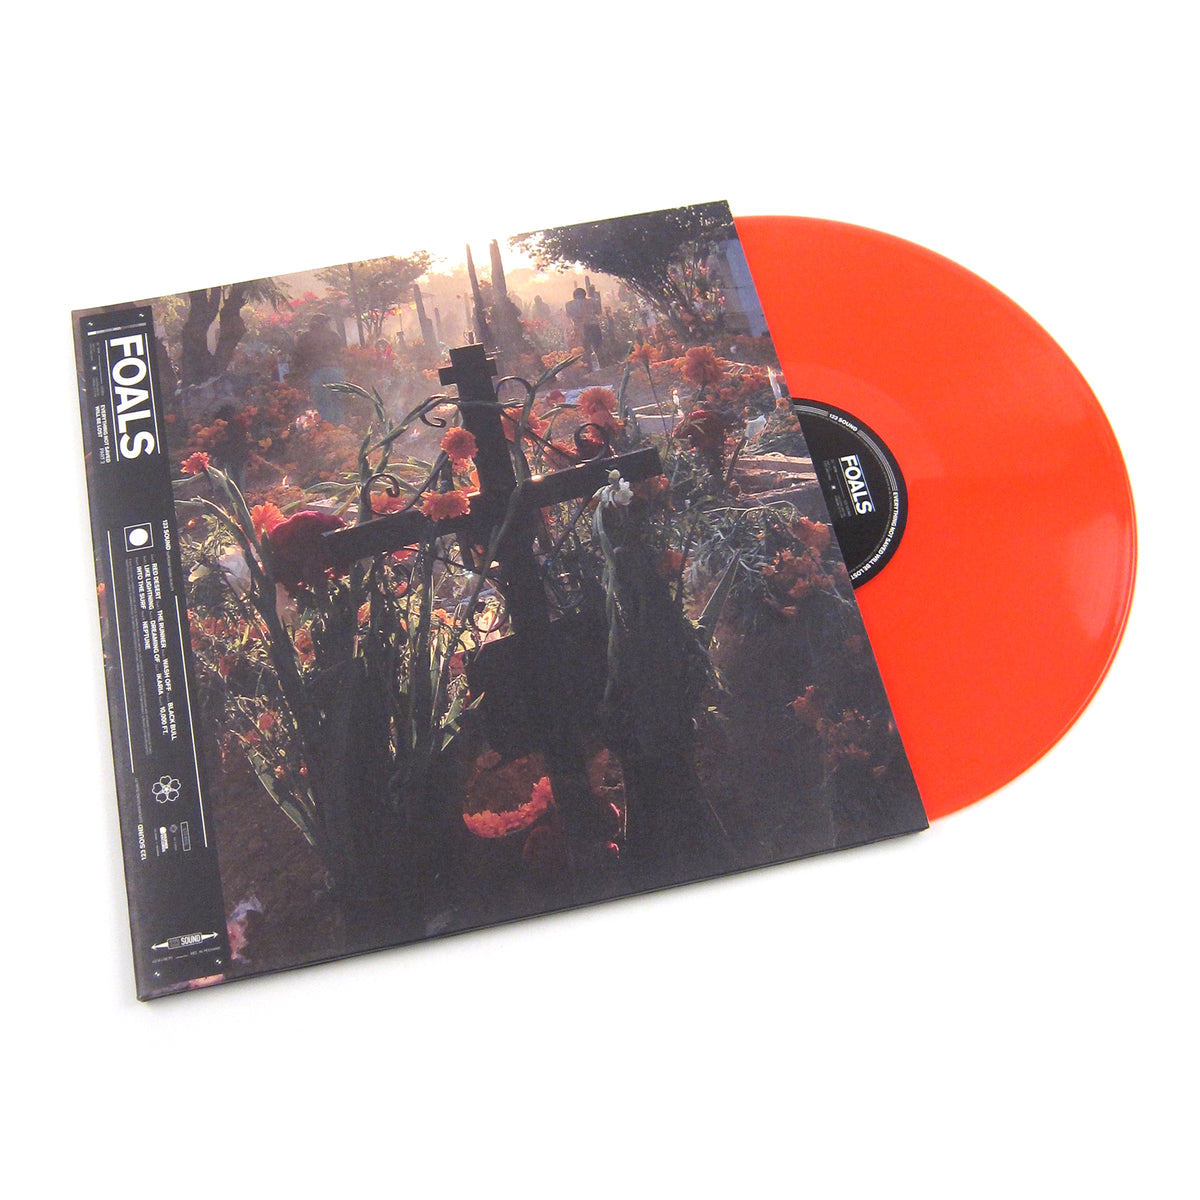 Foals: Everything Not Saved Will Be Lost Part 2 (180g Indie Exclusive Colored Vinyl) Vinyl LP